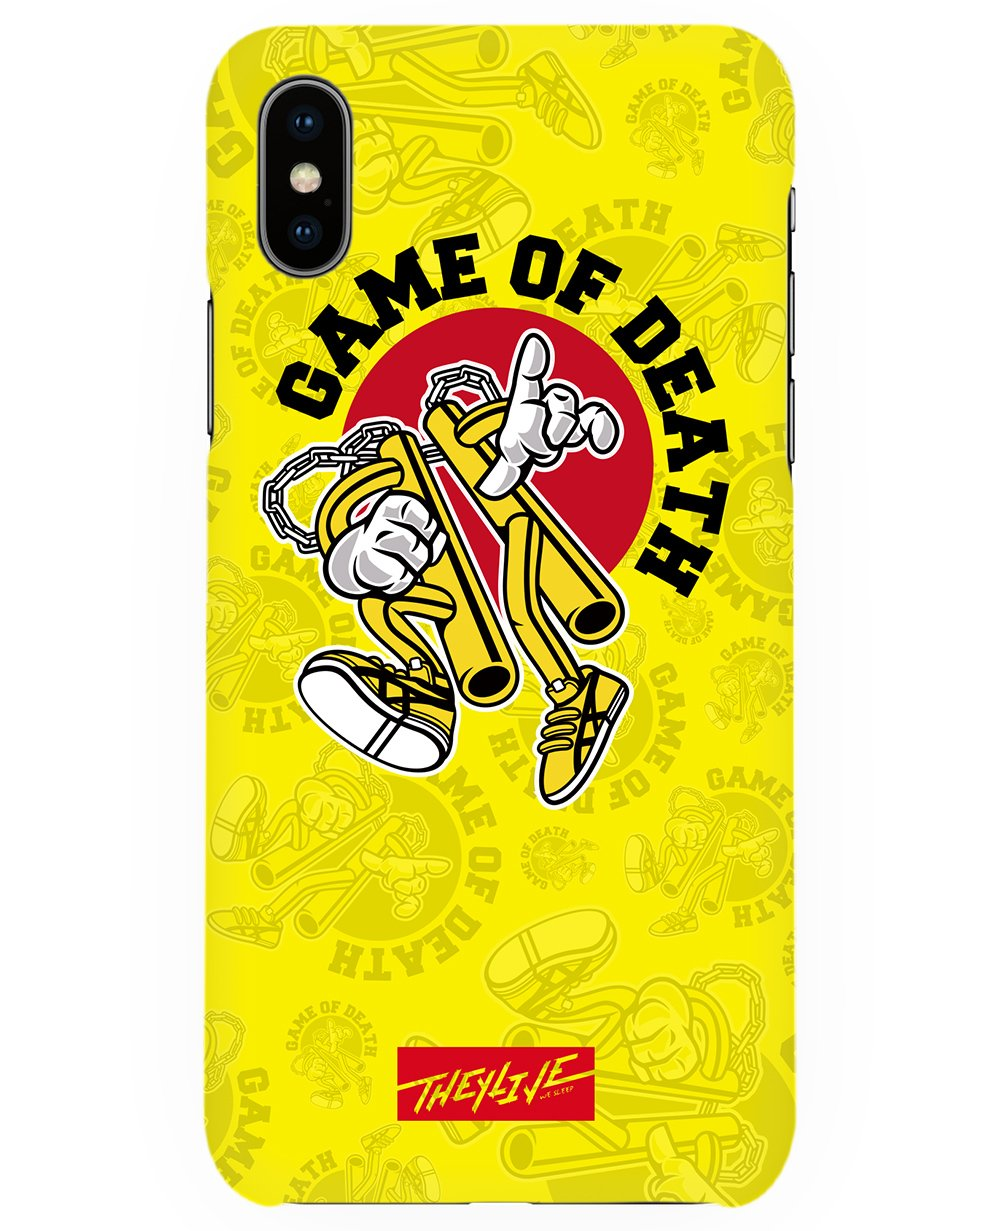 Game Of Death Print Iphone Case in Yellow - Phone cases - THEYLIVE - BRANMA